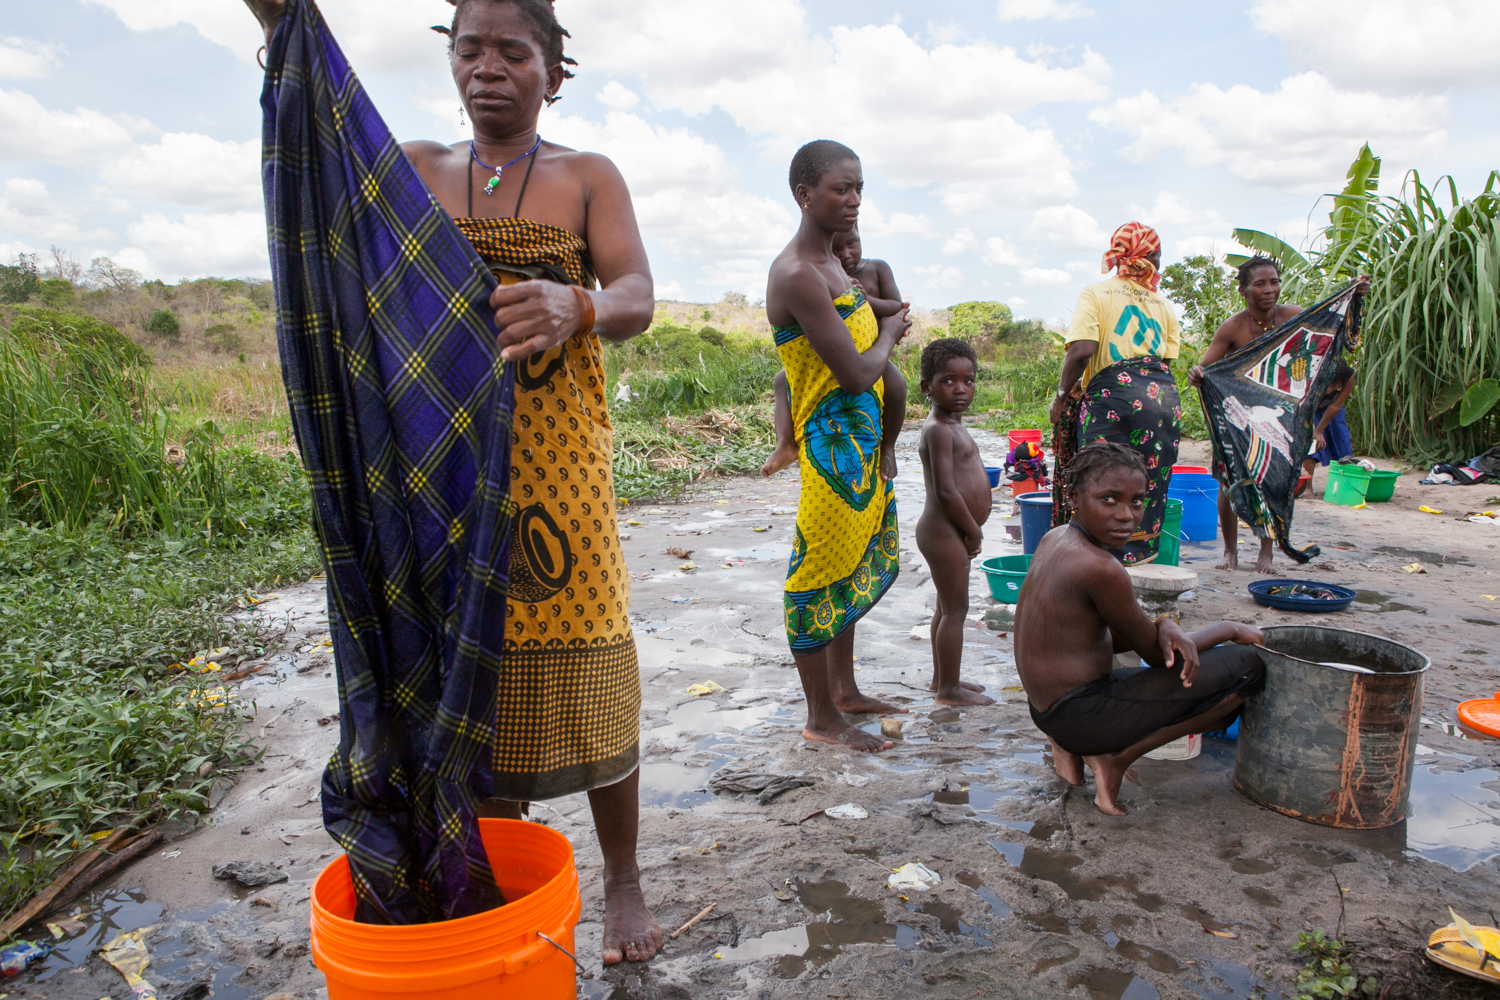 When pumps are not working, locals use nearby rivers and swamps to do laundry and bathe themselves. It is possible that wildlife or waste streams contaminate the water, thus increasing the dangers of widespread disease.